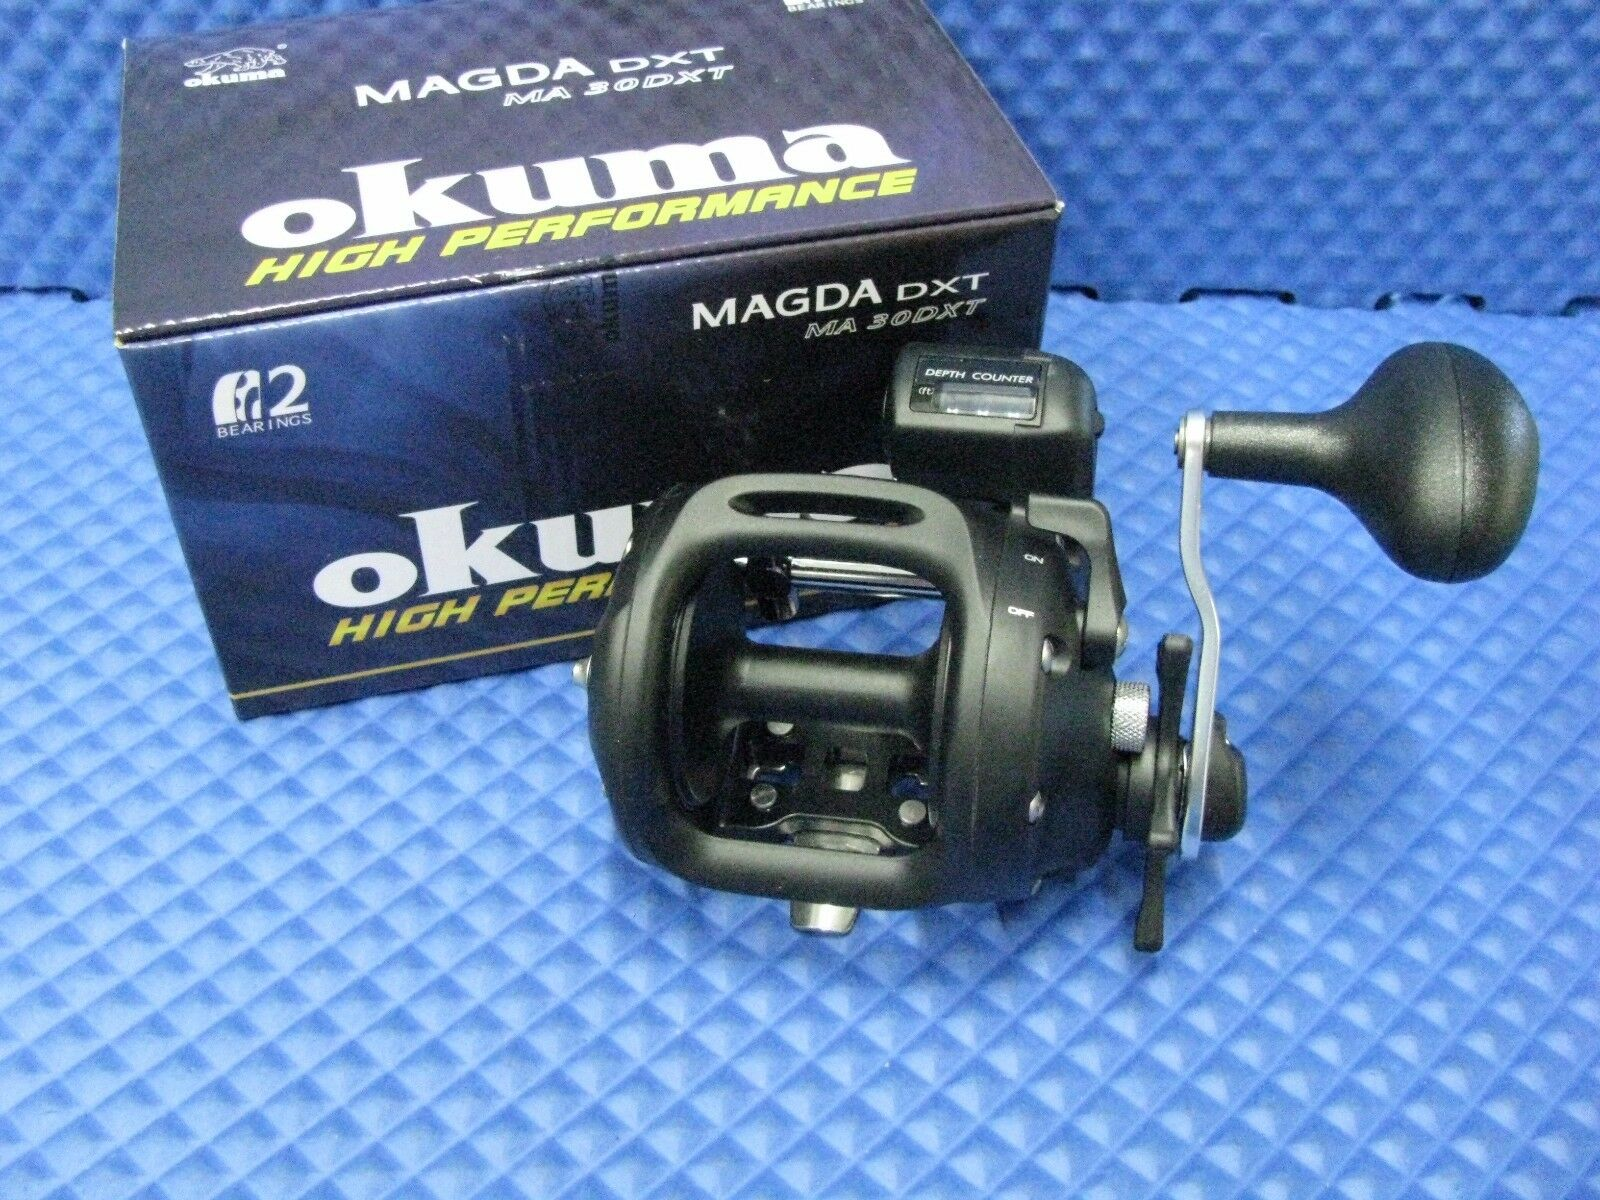 Okuma Magda Pro Counter MA 30DXT Line Counter Pro Trolling Reel NEW 2ca0cb